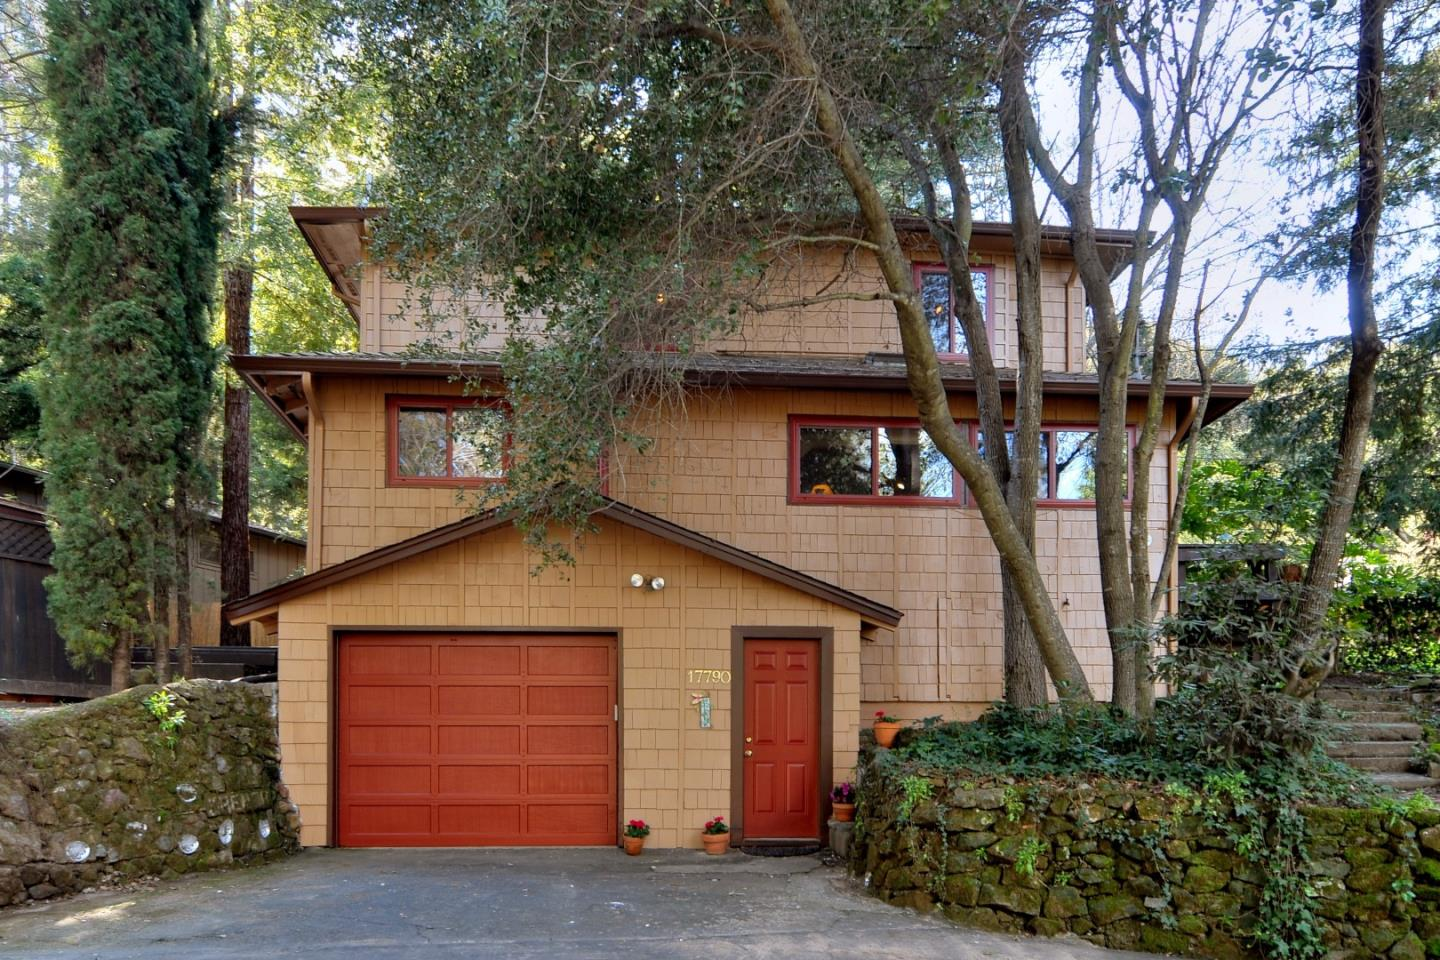 265 Outer Zayante Road, 7101, Ca 95033 | Bailey Properties